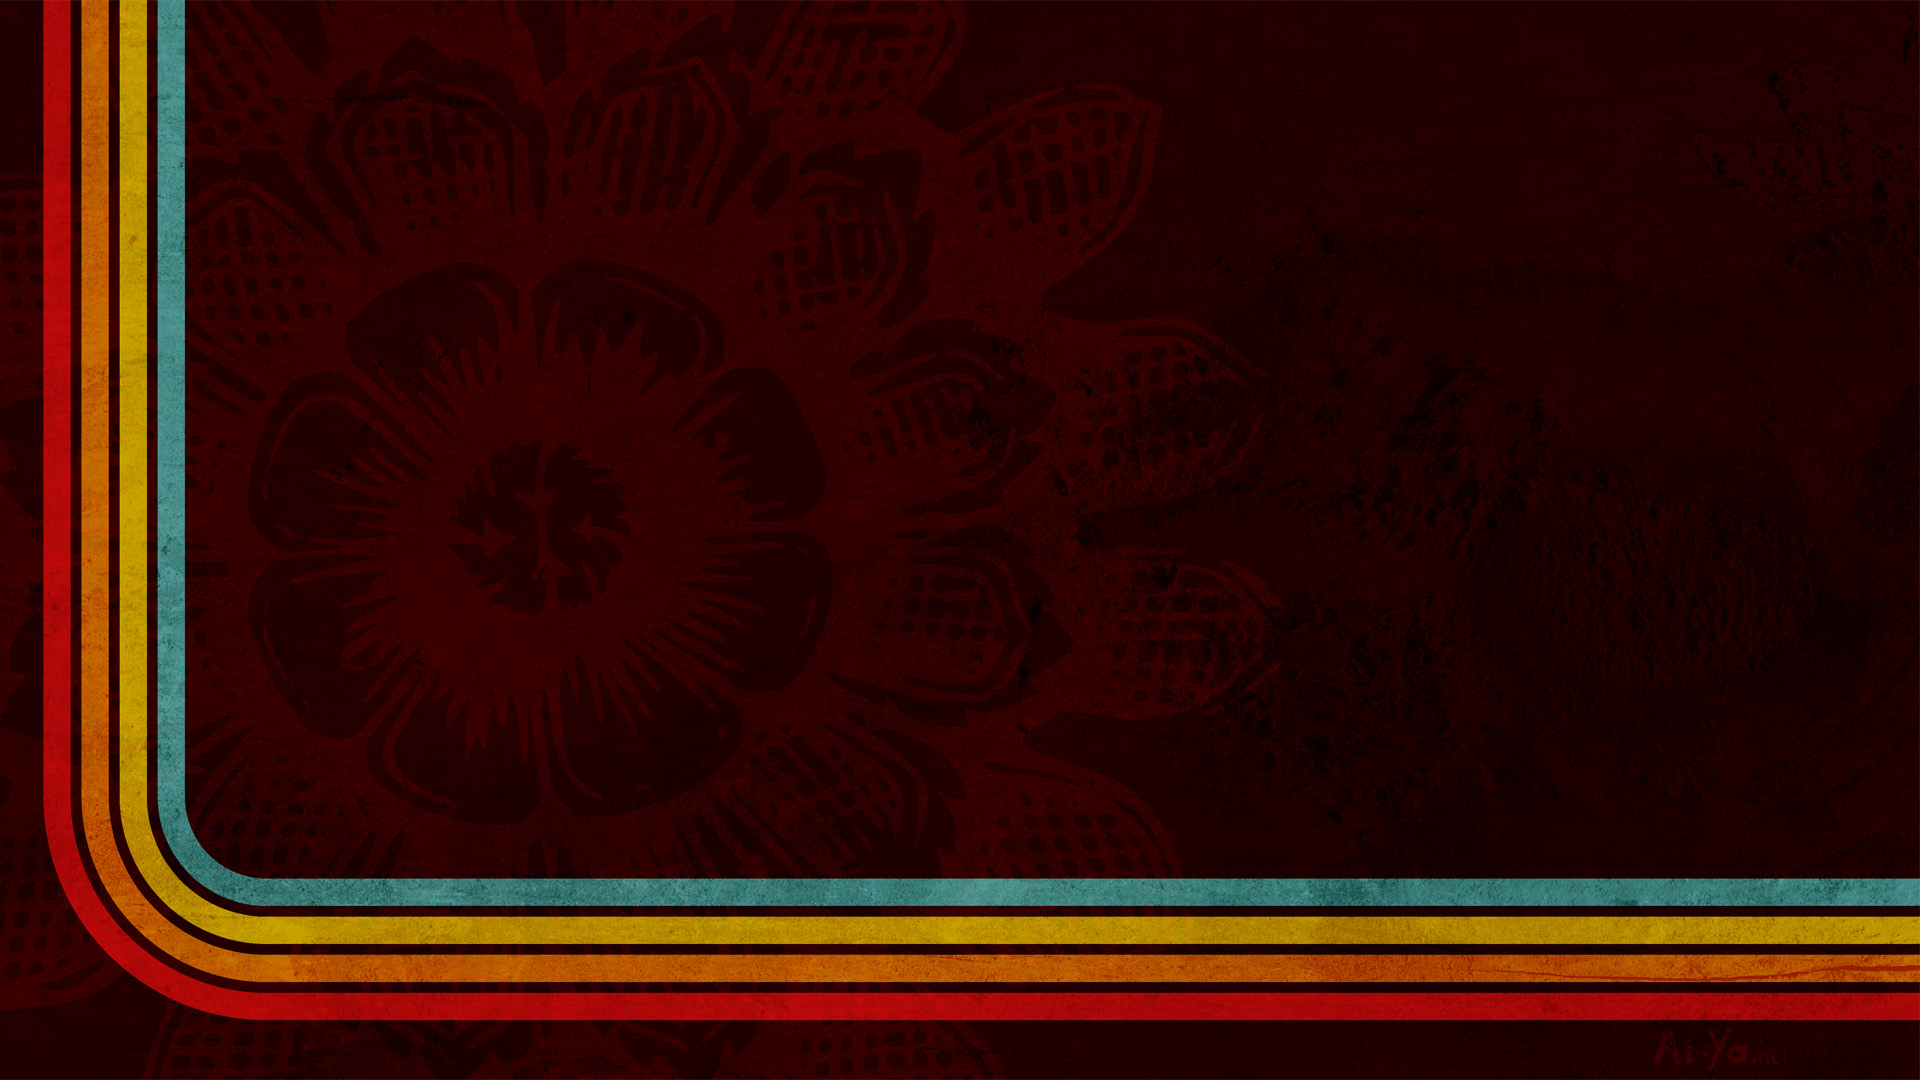 simple retro wallpaper 1920x1080 - photo #20